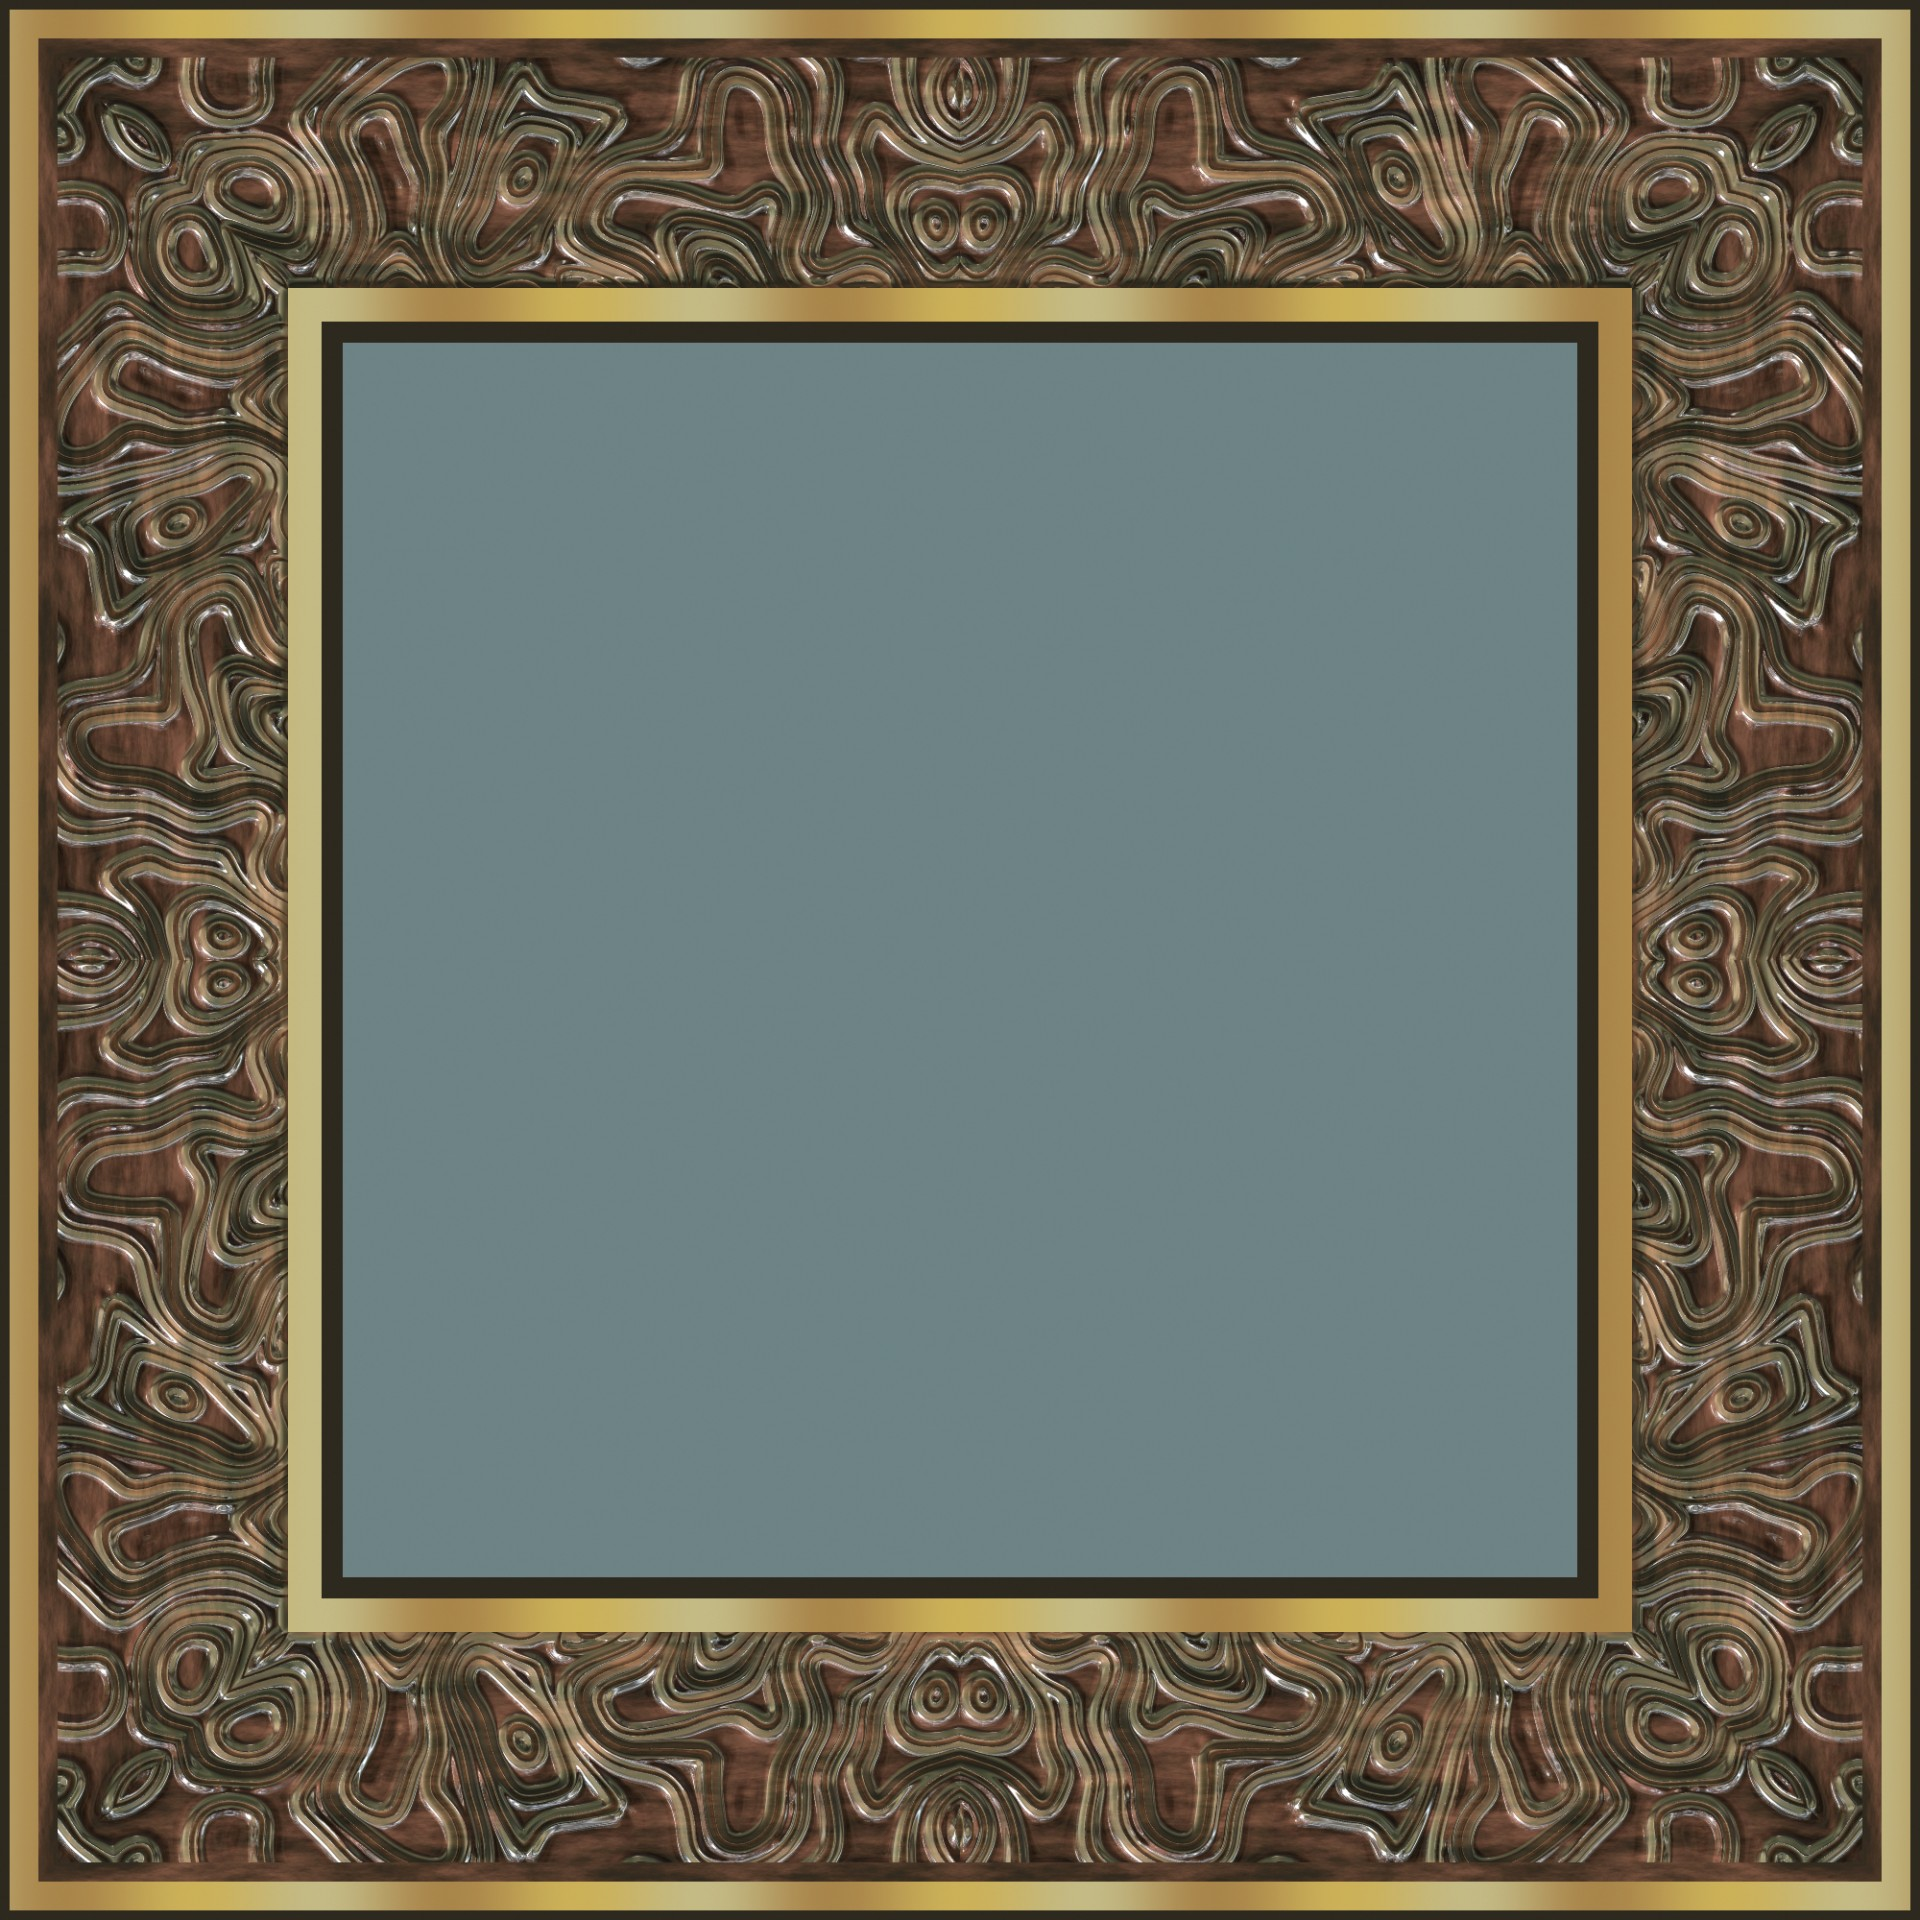 Fancy Frame Square Carving Metal Free